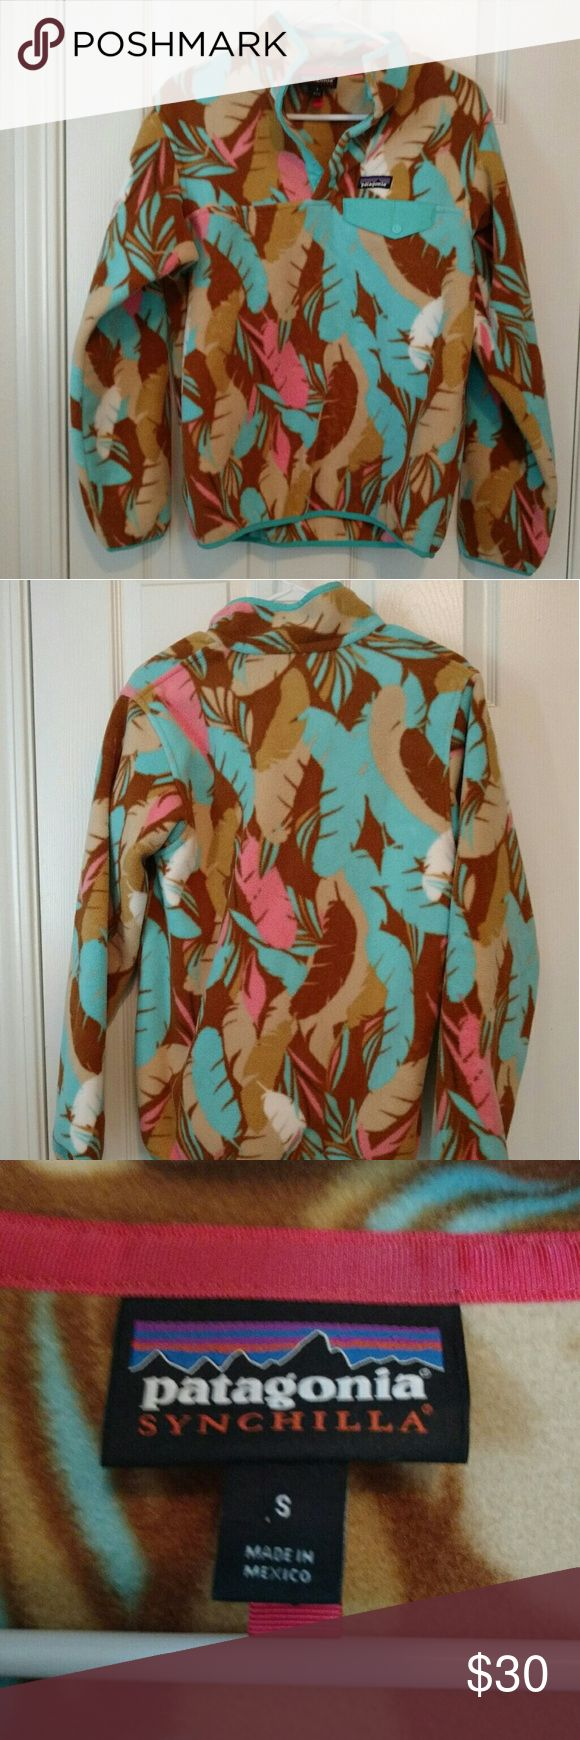 Patagonia Synchilla fleece pullover size small Patagonia women's lightweight synchilla snap-t fleece pullover, size small. Feather print. Only worn once. Patagonia Jackets & Coats